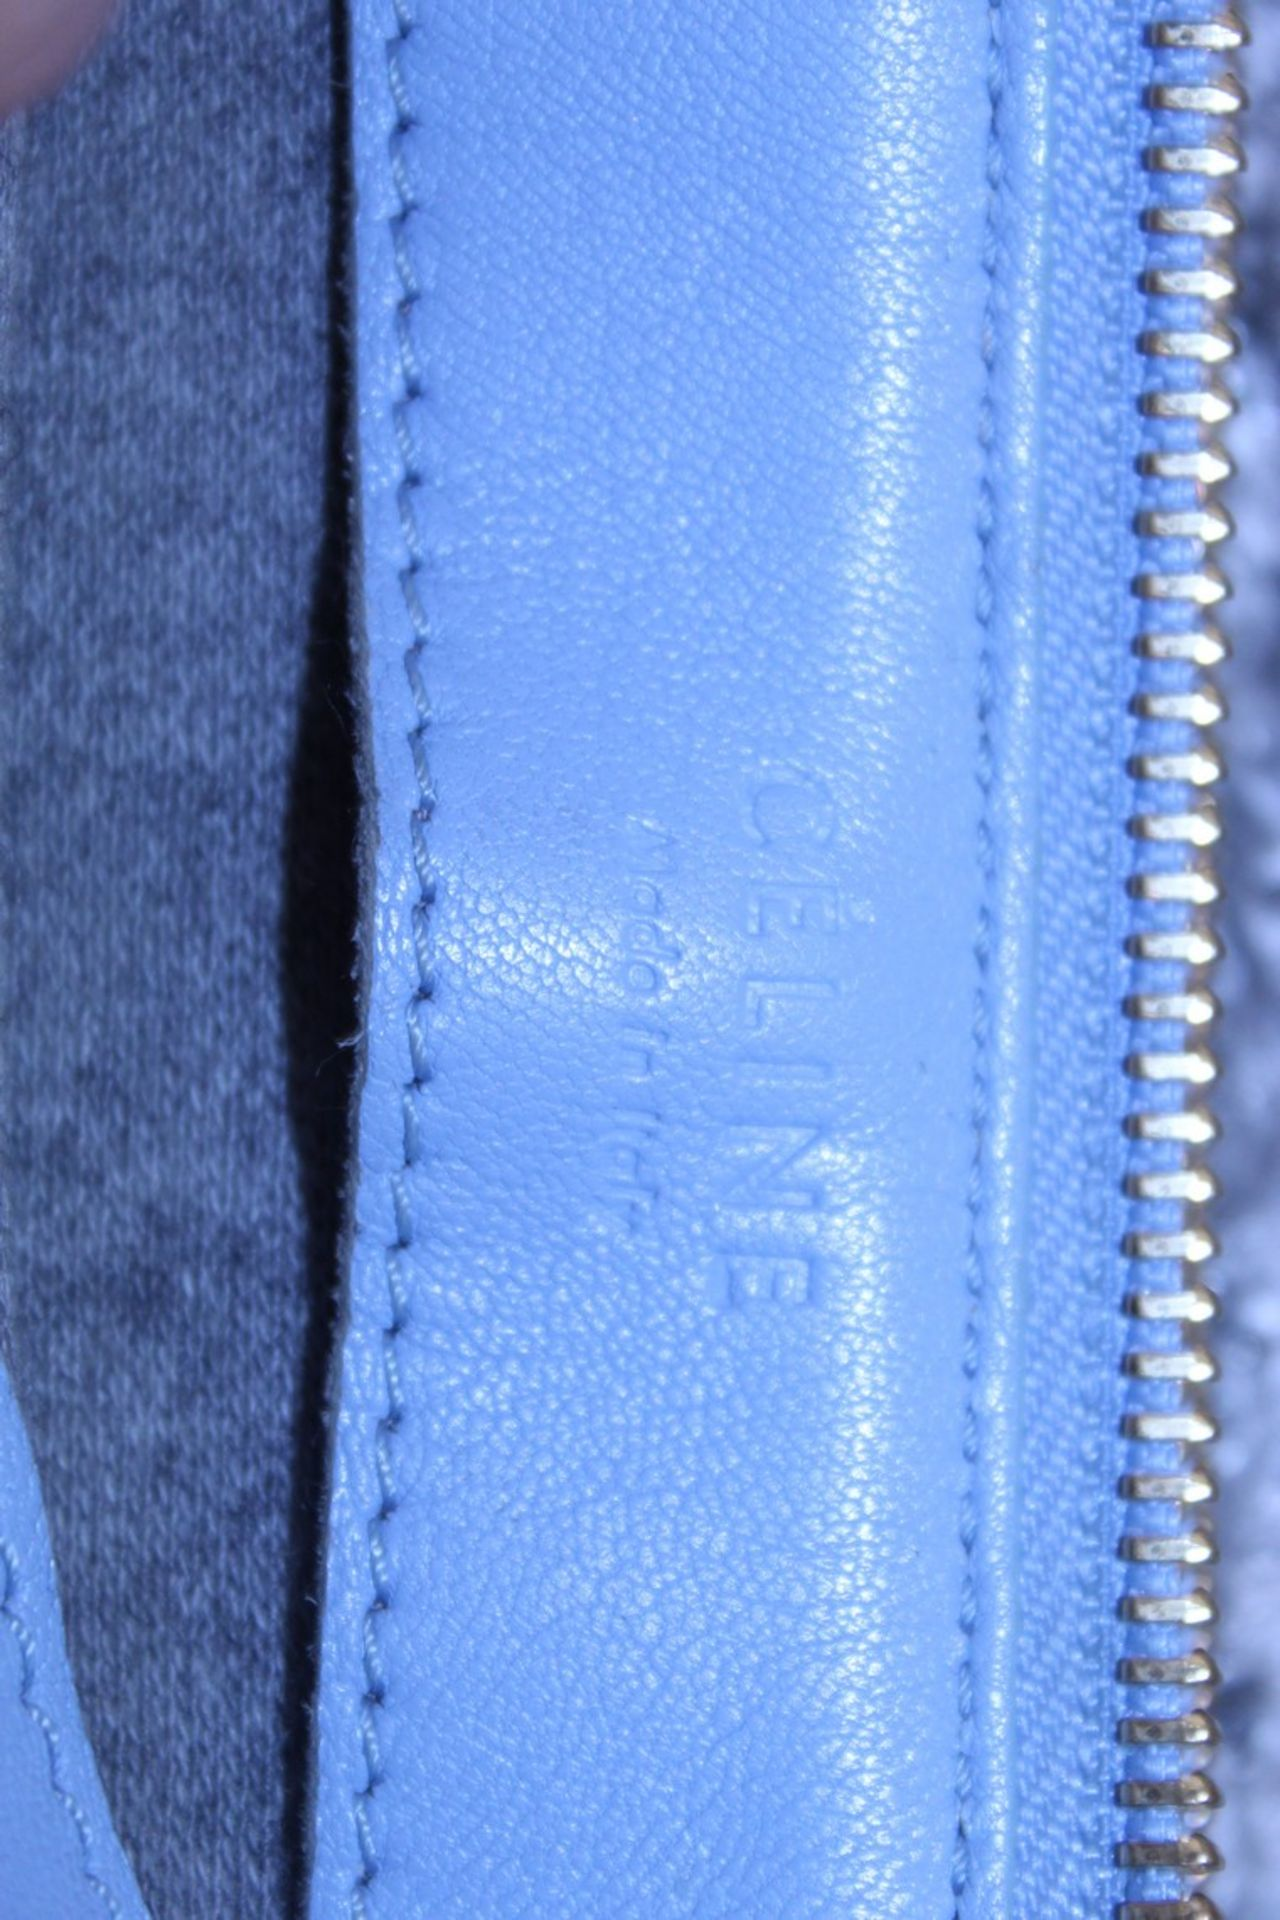 RRP £890 Celine Small Shoulder Bag, Blue Small Grained Claf Leather With Blue Leater Handles. - Image 3 of 4